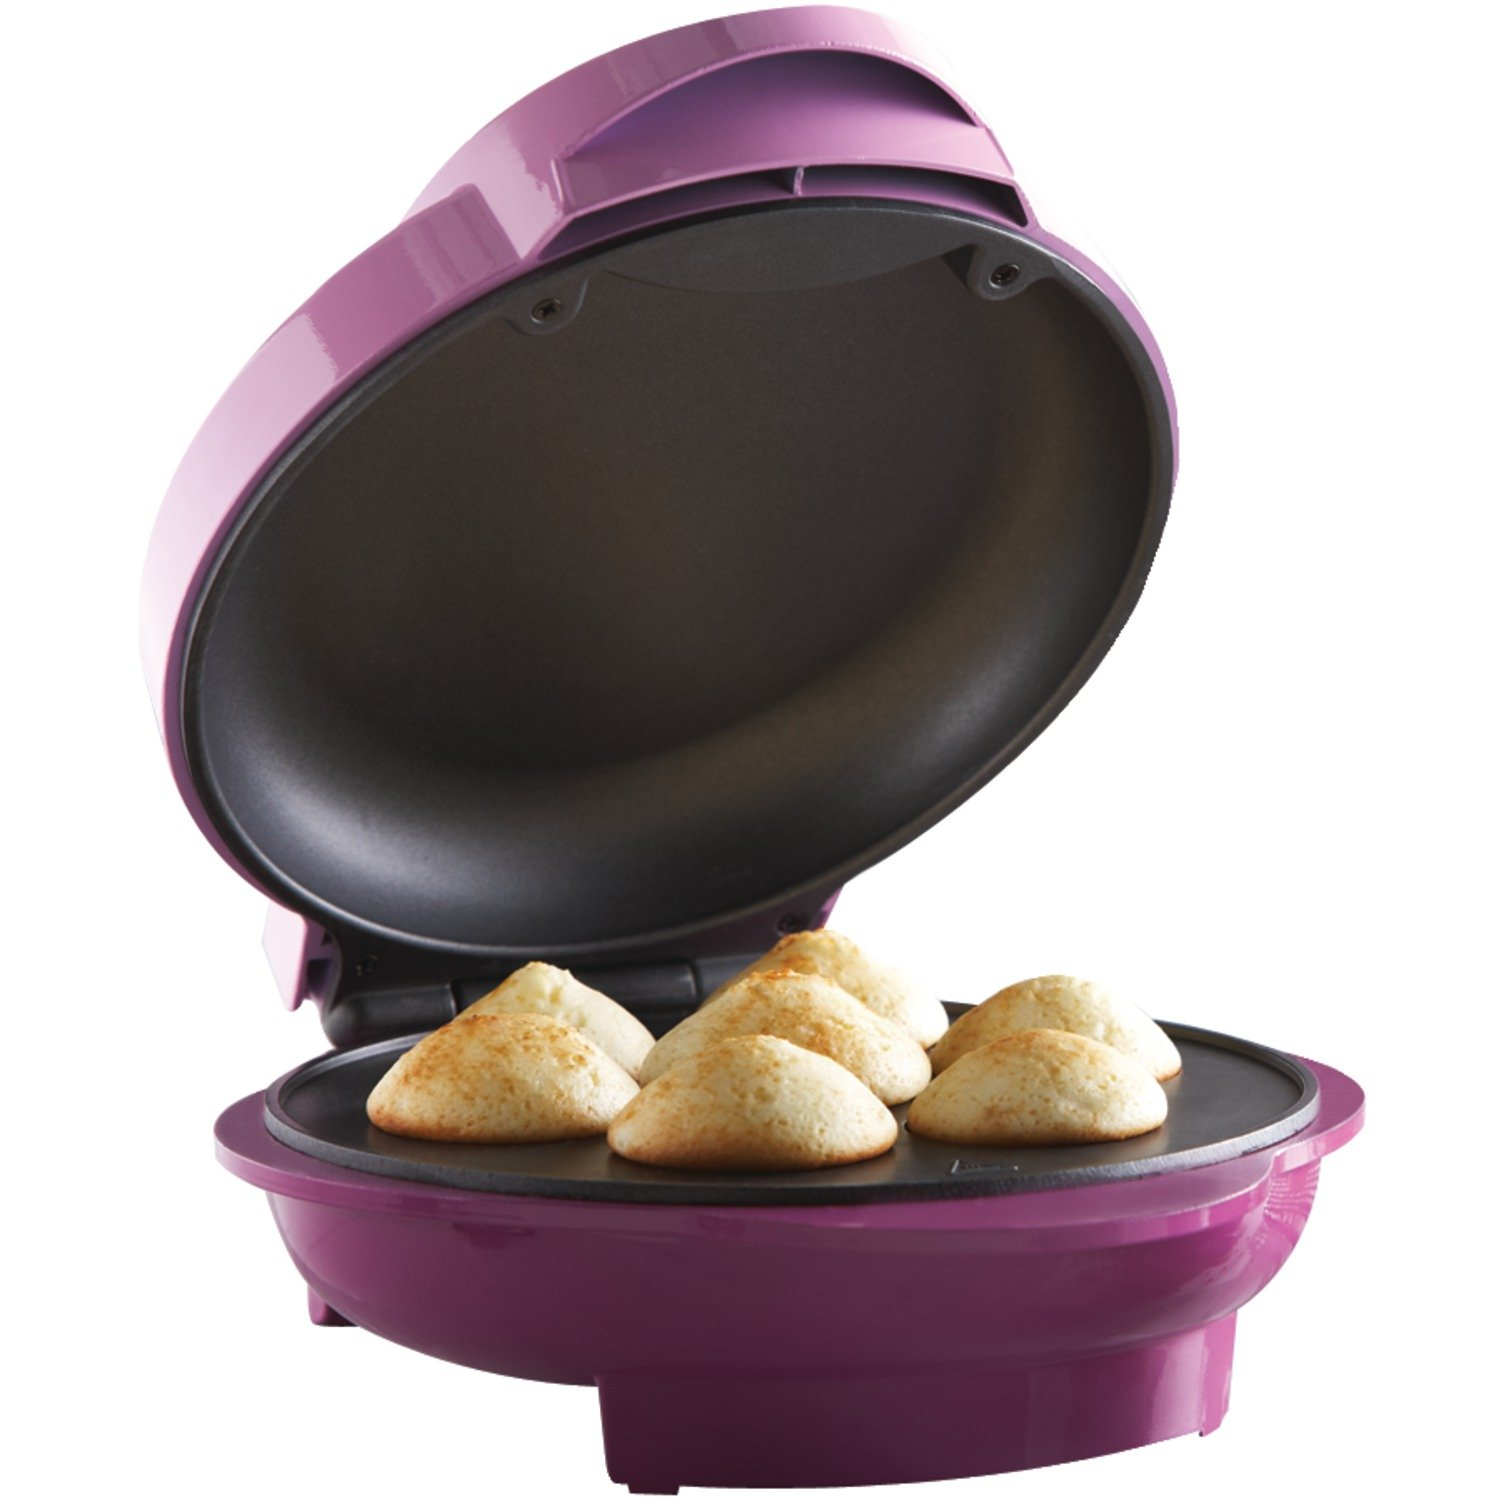 Brentwood Appliances TS-252 Electric Food (Mini Cupcake Maker), None Pink